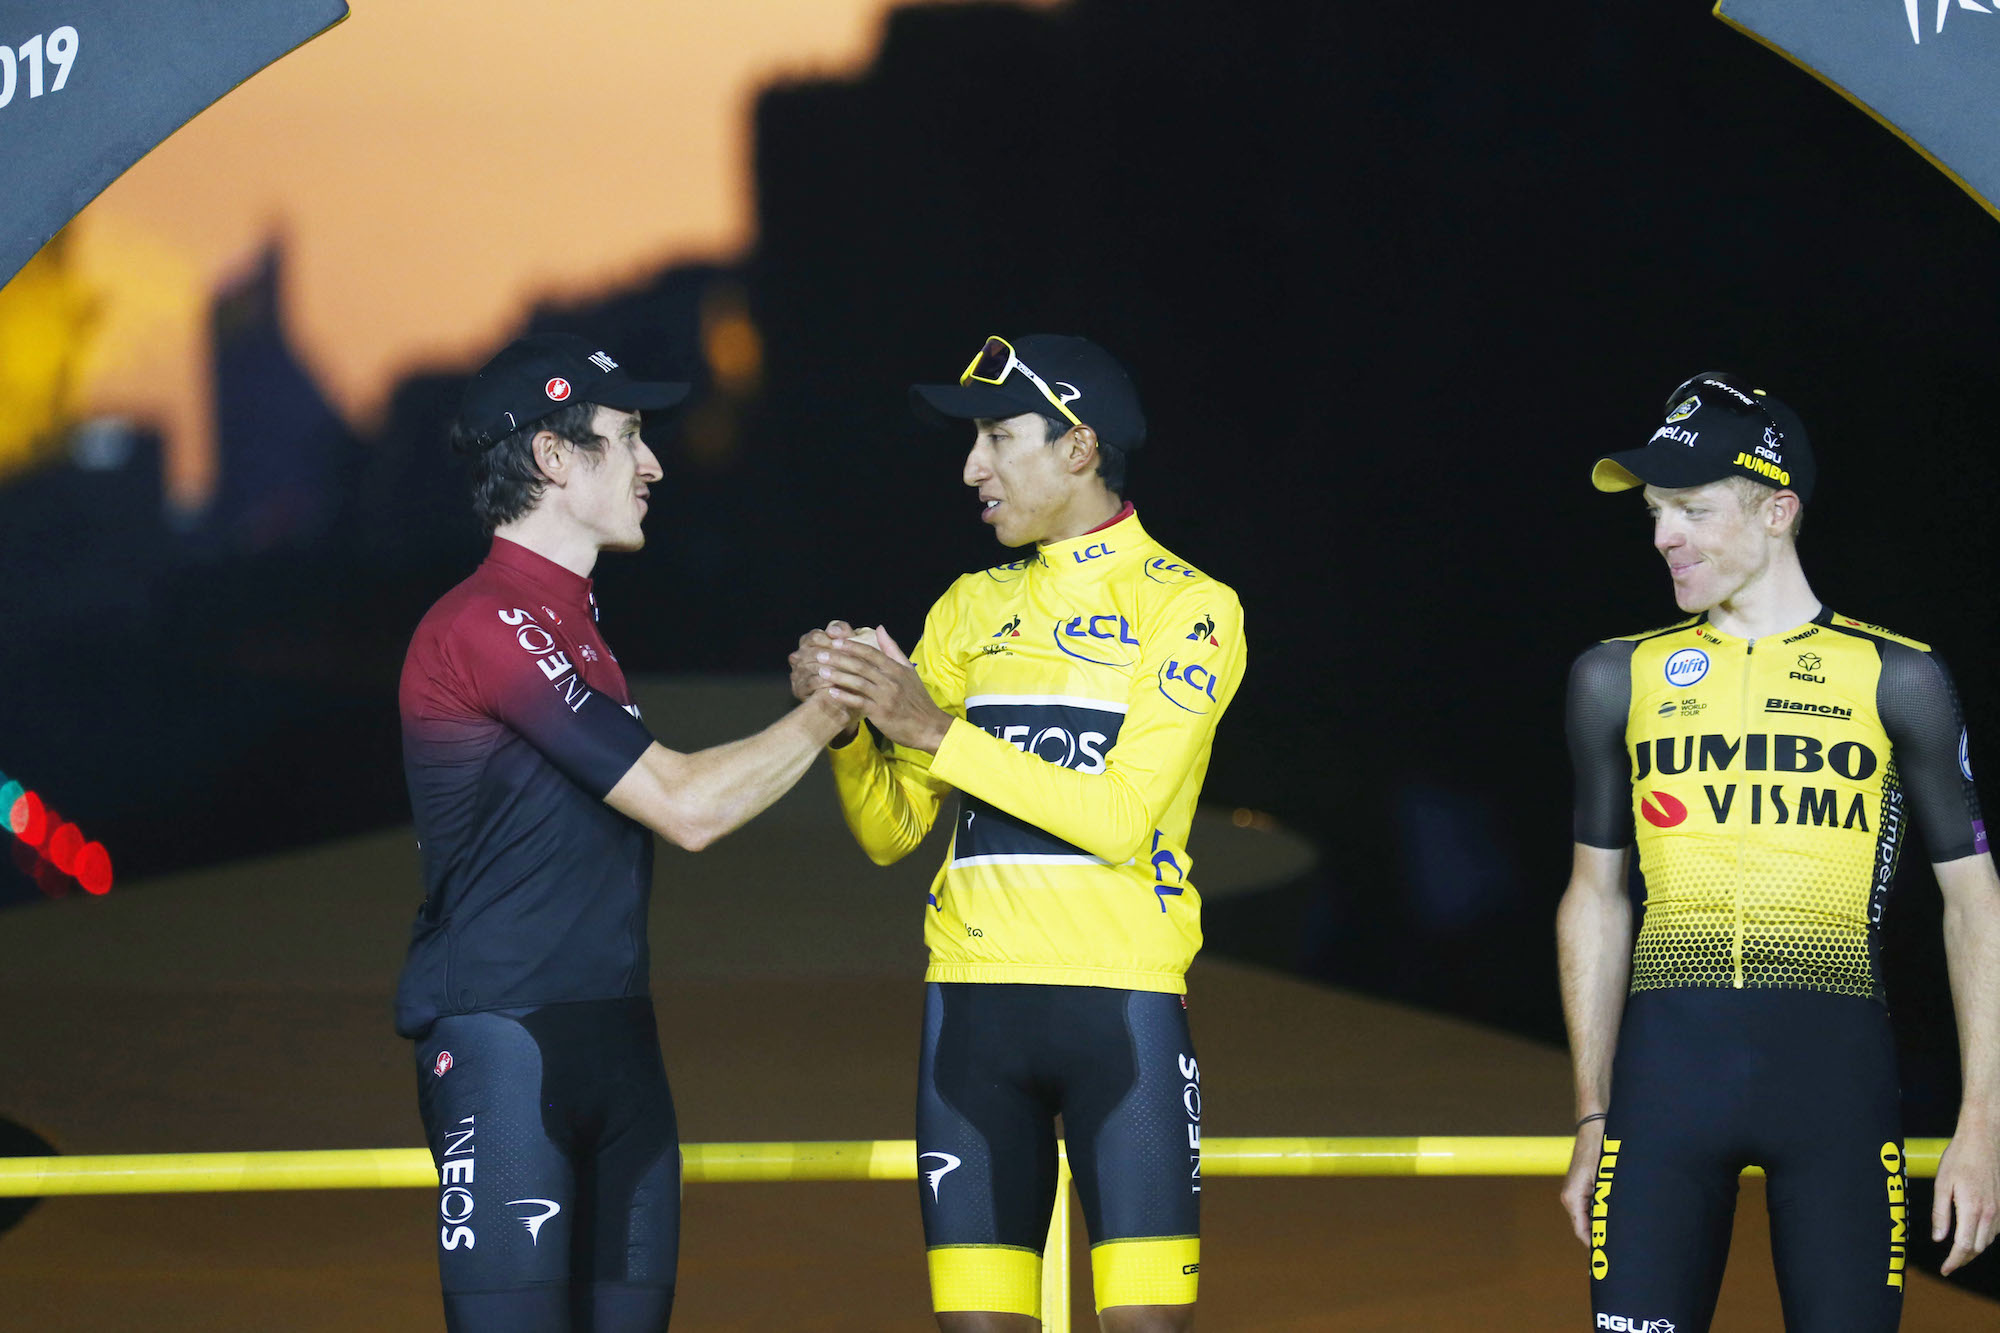 Geraint Thomas admits he's disappointed not to win Tour de France 2019 but proud to help Egan Bernal